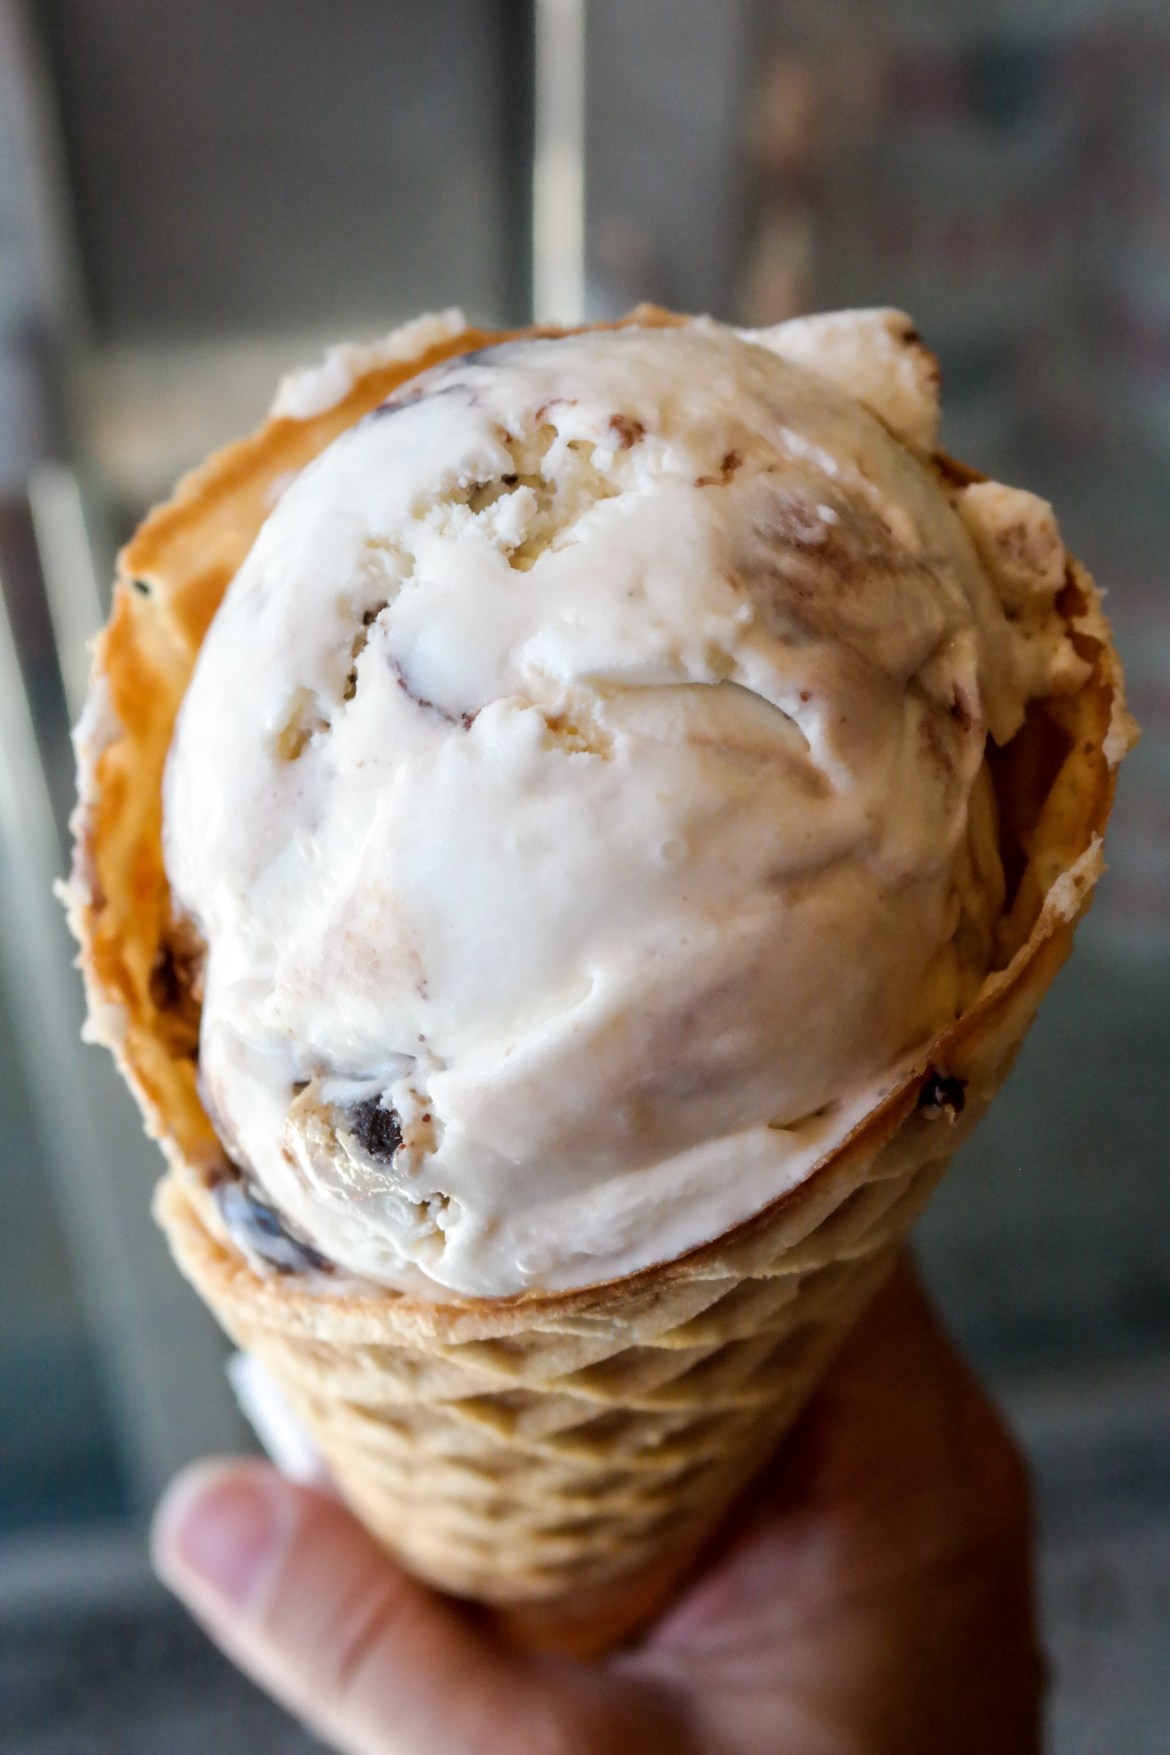 Salt & Straw Best Ice Cream Los Angeles California